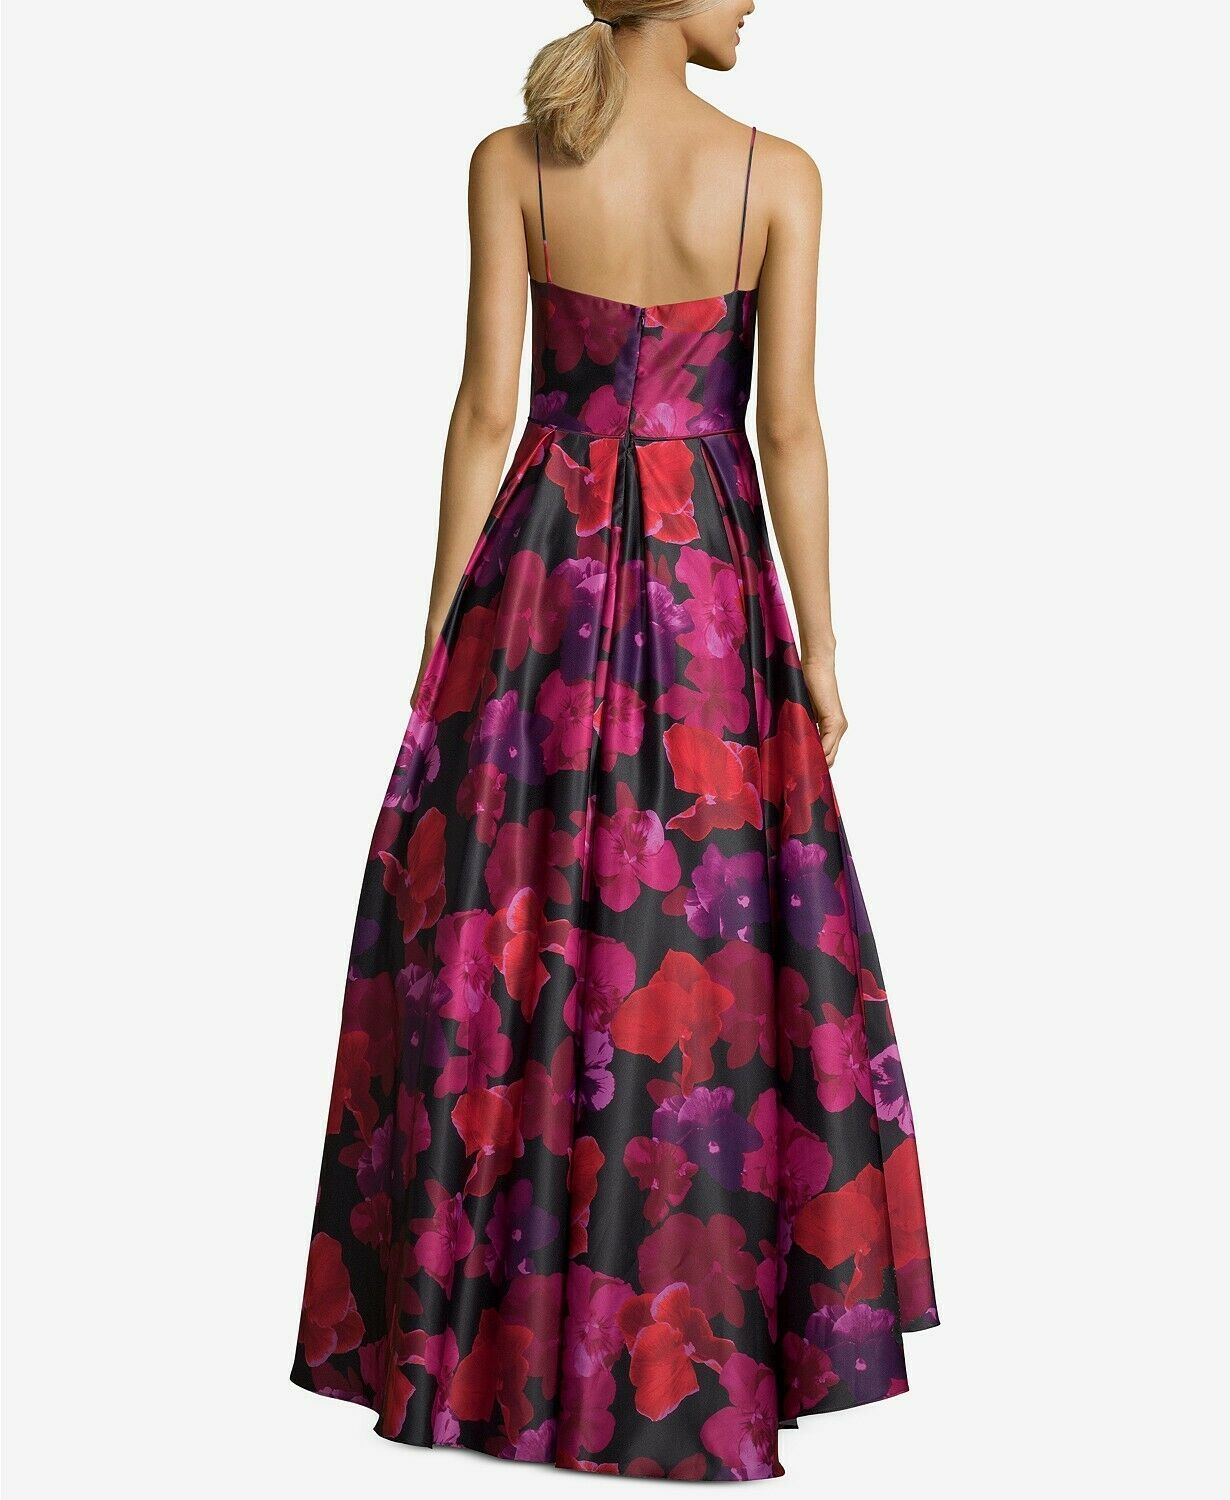 Betsy & Adam Floral-Print High-Low Gown Black/Red/Hot Magenta Size 8 $320 image 2